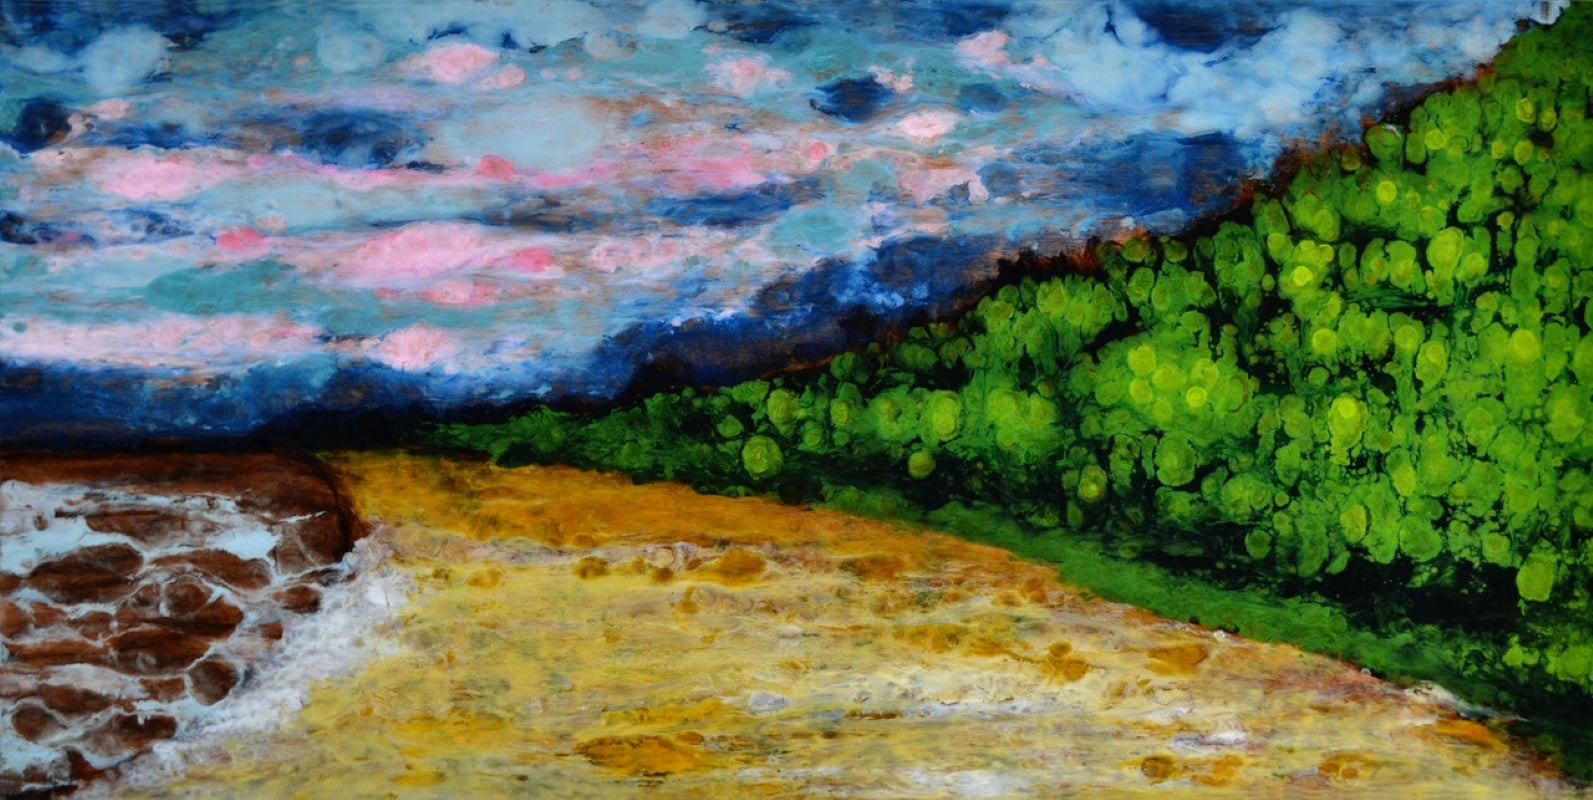 St Henri de Taillon, 30x60, abstracted landscape, Hi-gloss, Green, Yellow, Pink